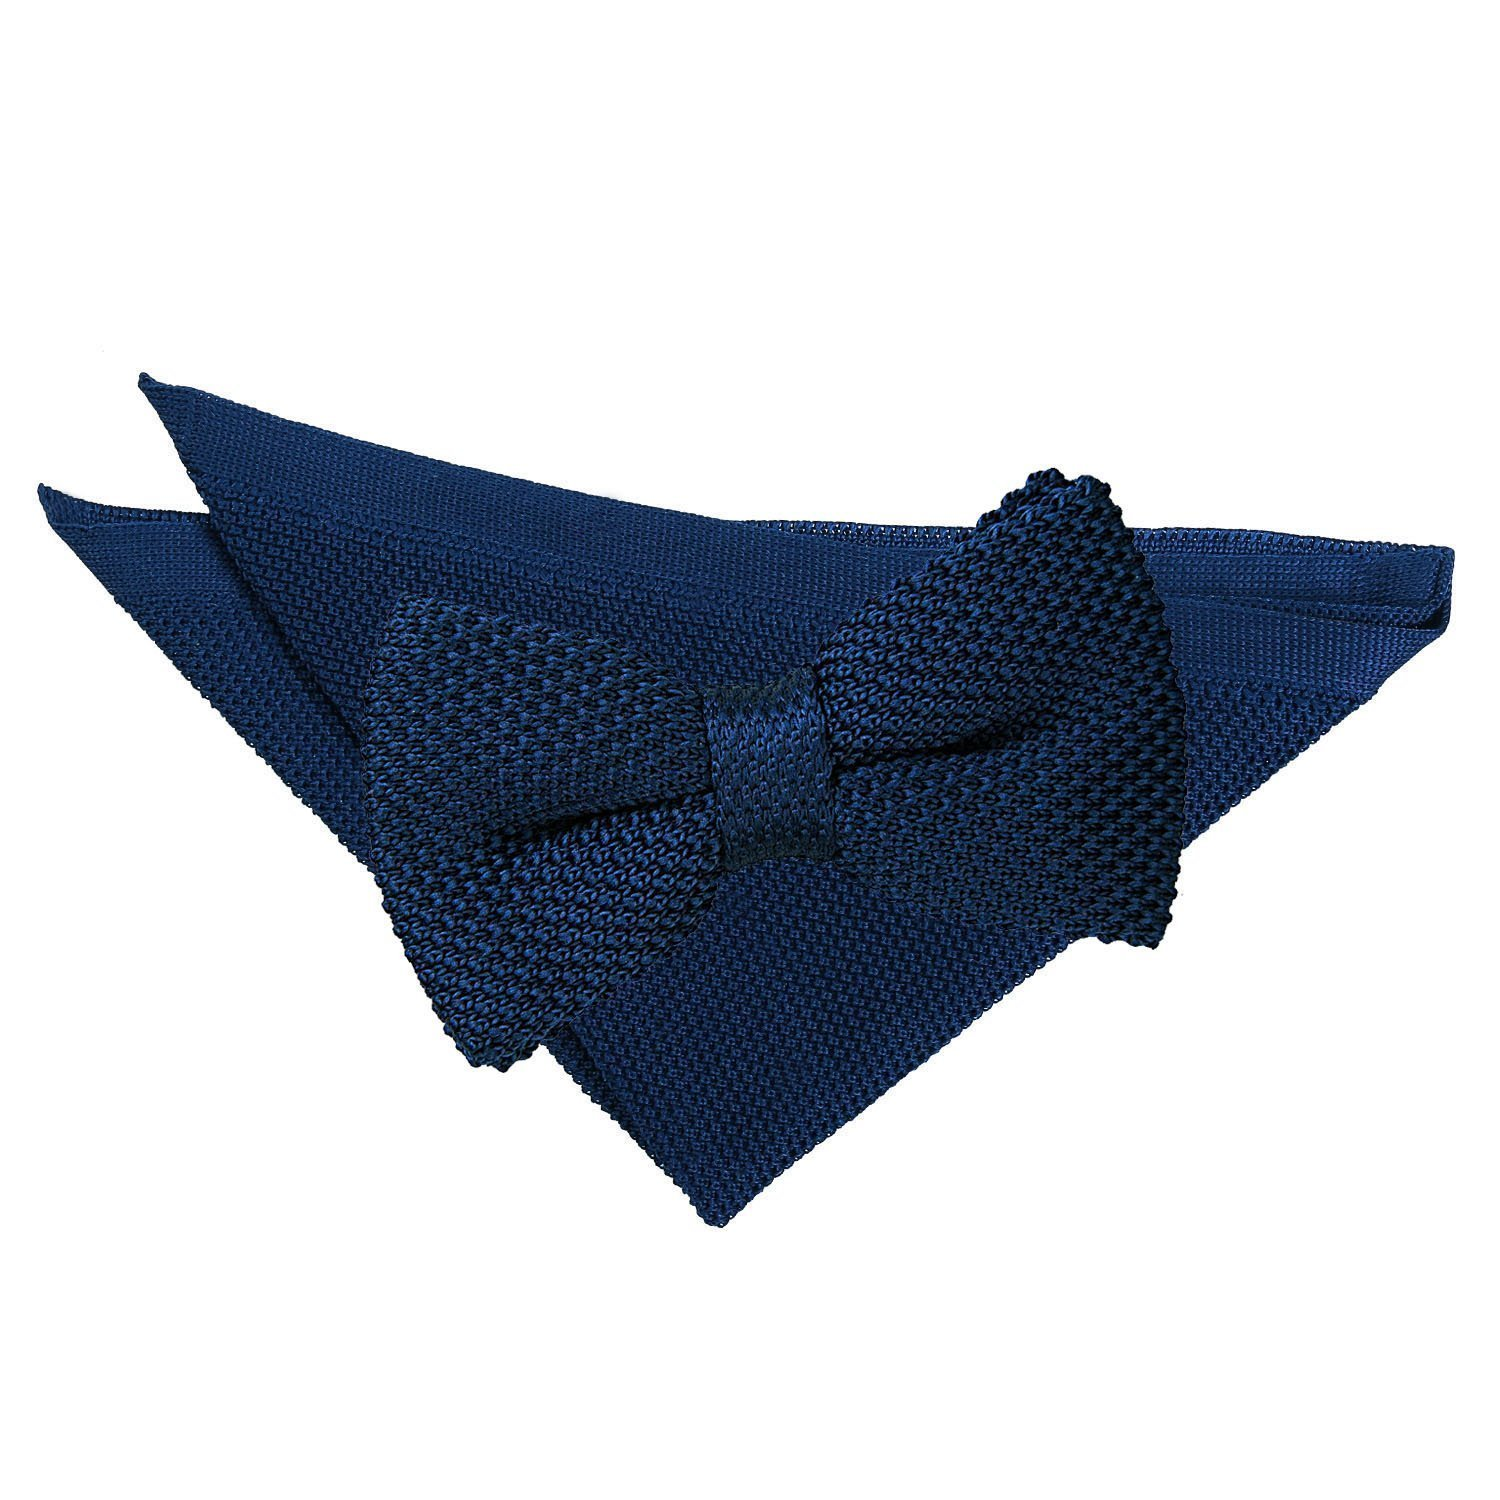 93f6d70867b7 Tangerine Knitted Bow Tie & Pocket Square Set